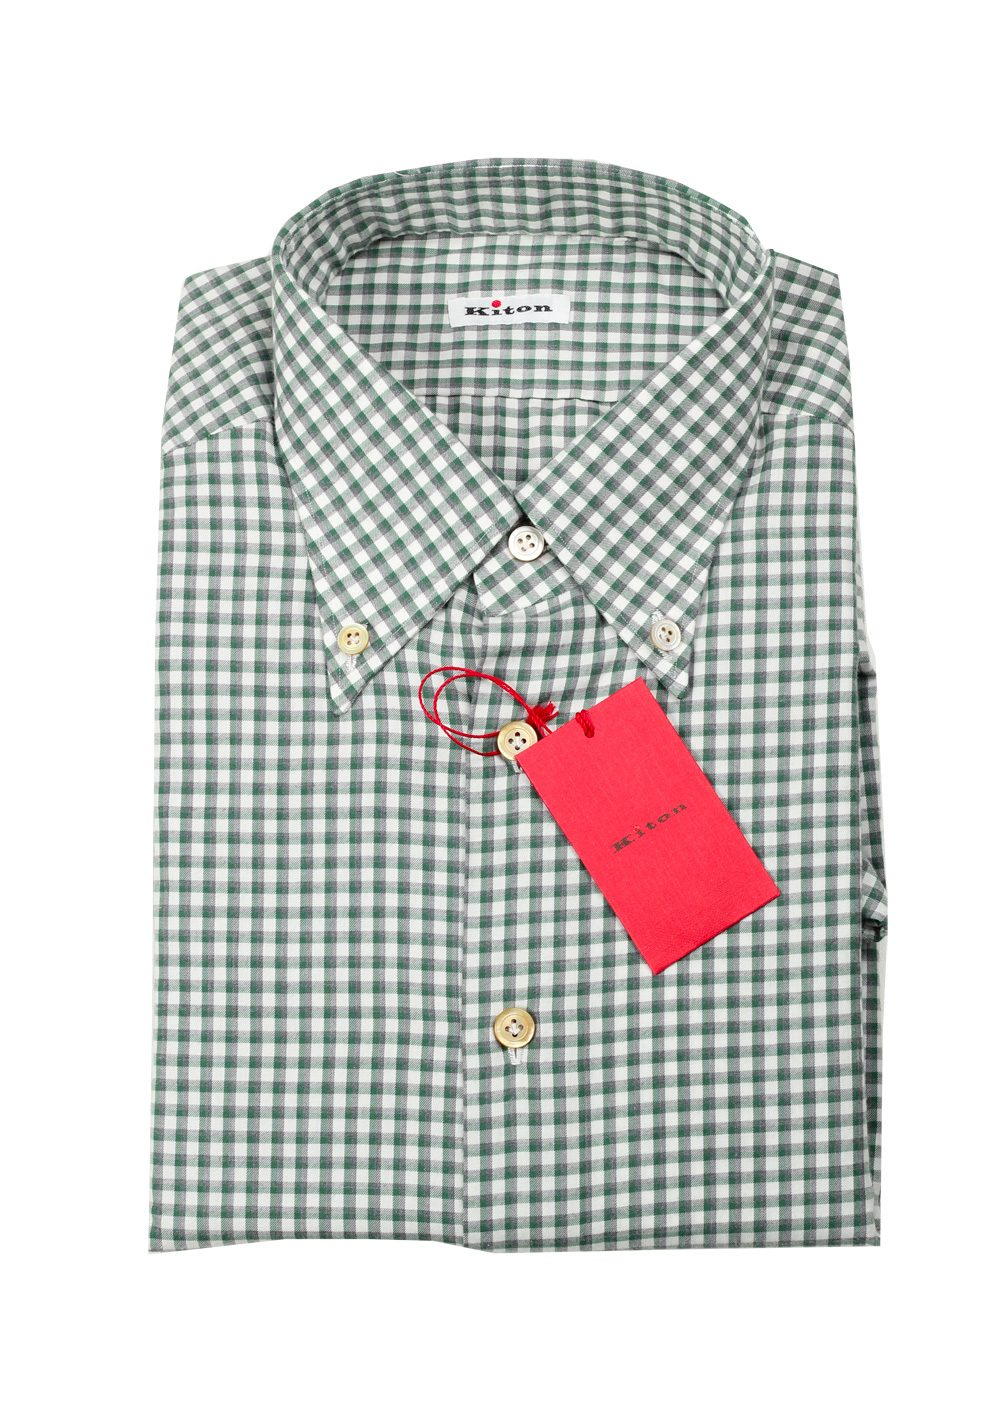 Kiton Checked White Green Gray Shirt Size 40 / 15,75 U.S. | Costume Limité